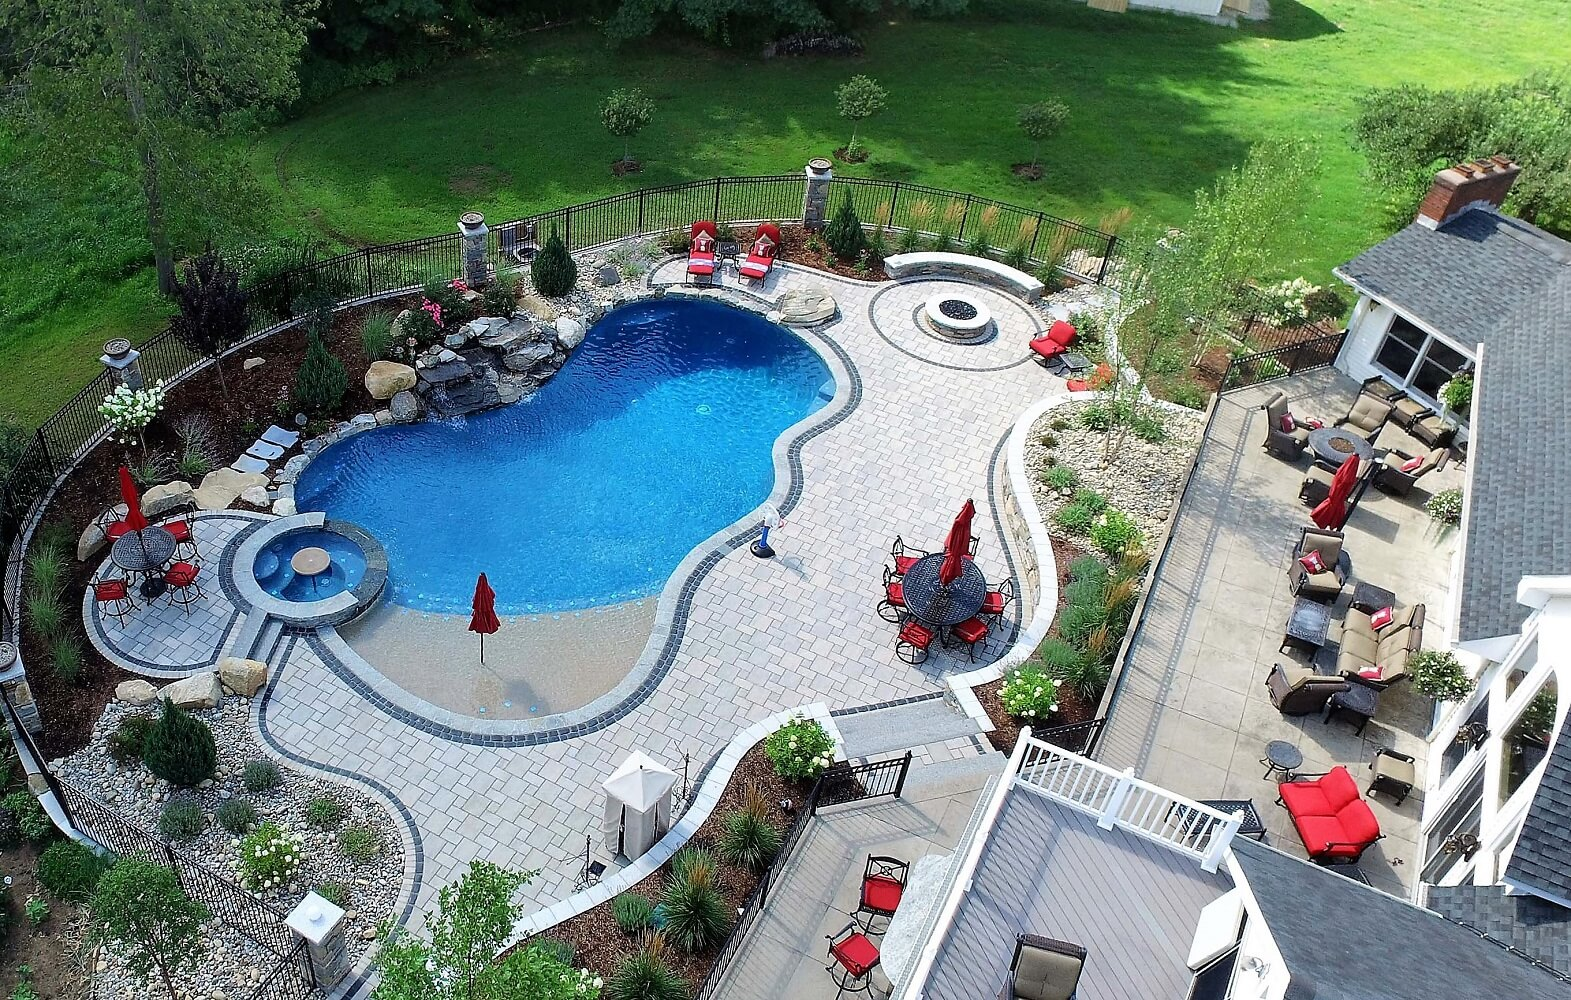 How Does a Self-Cleaning Pool System Work?